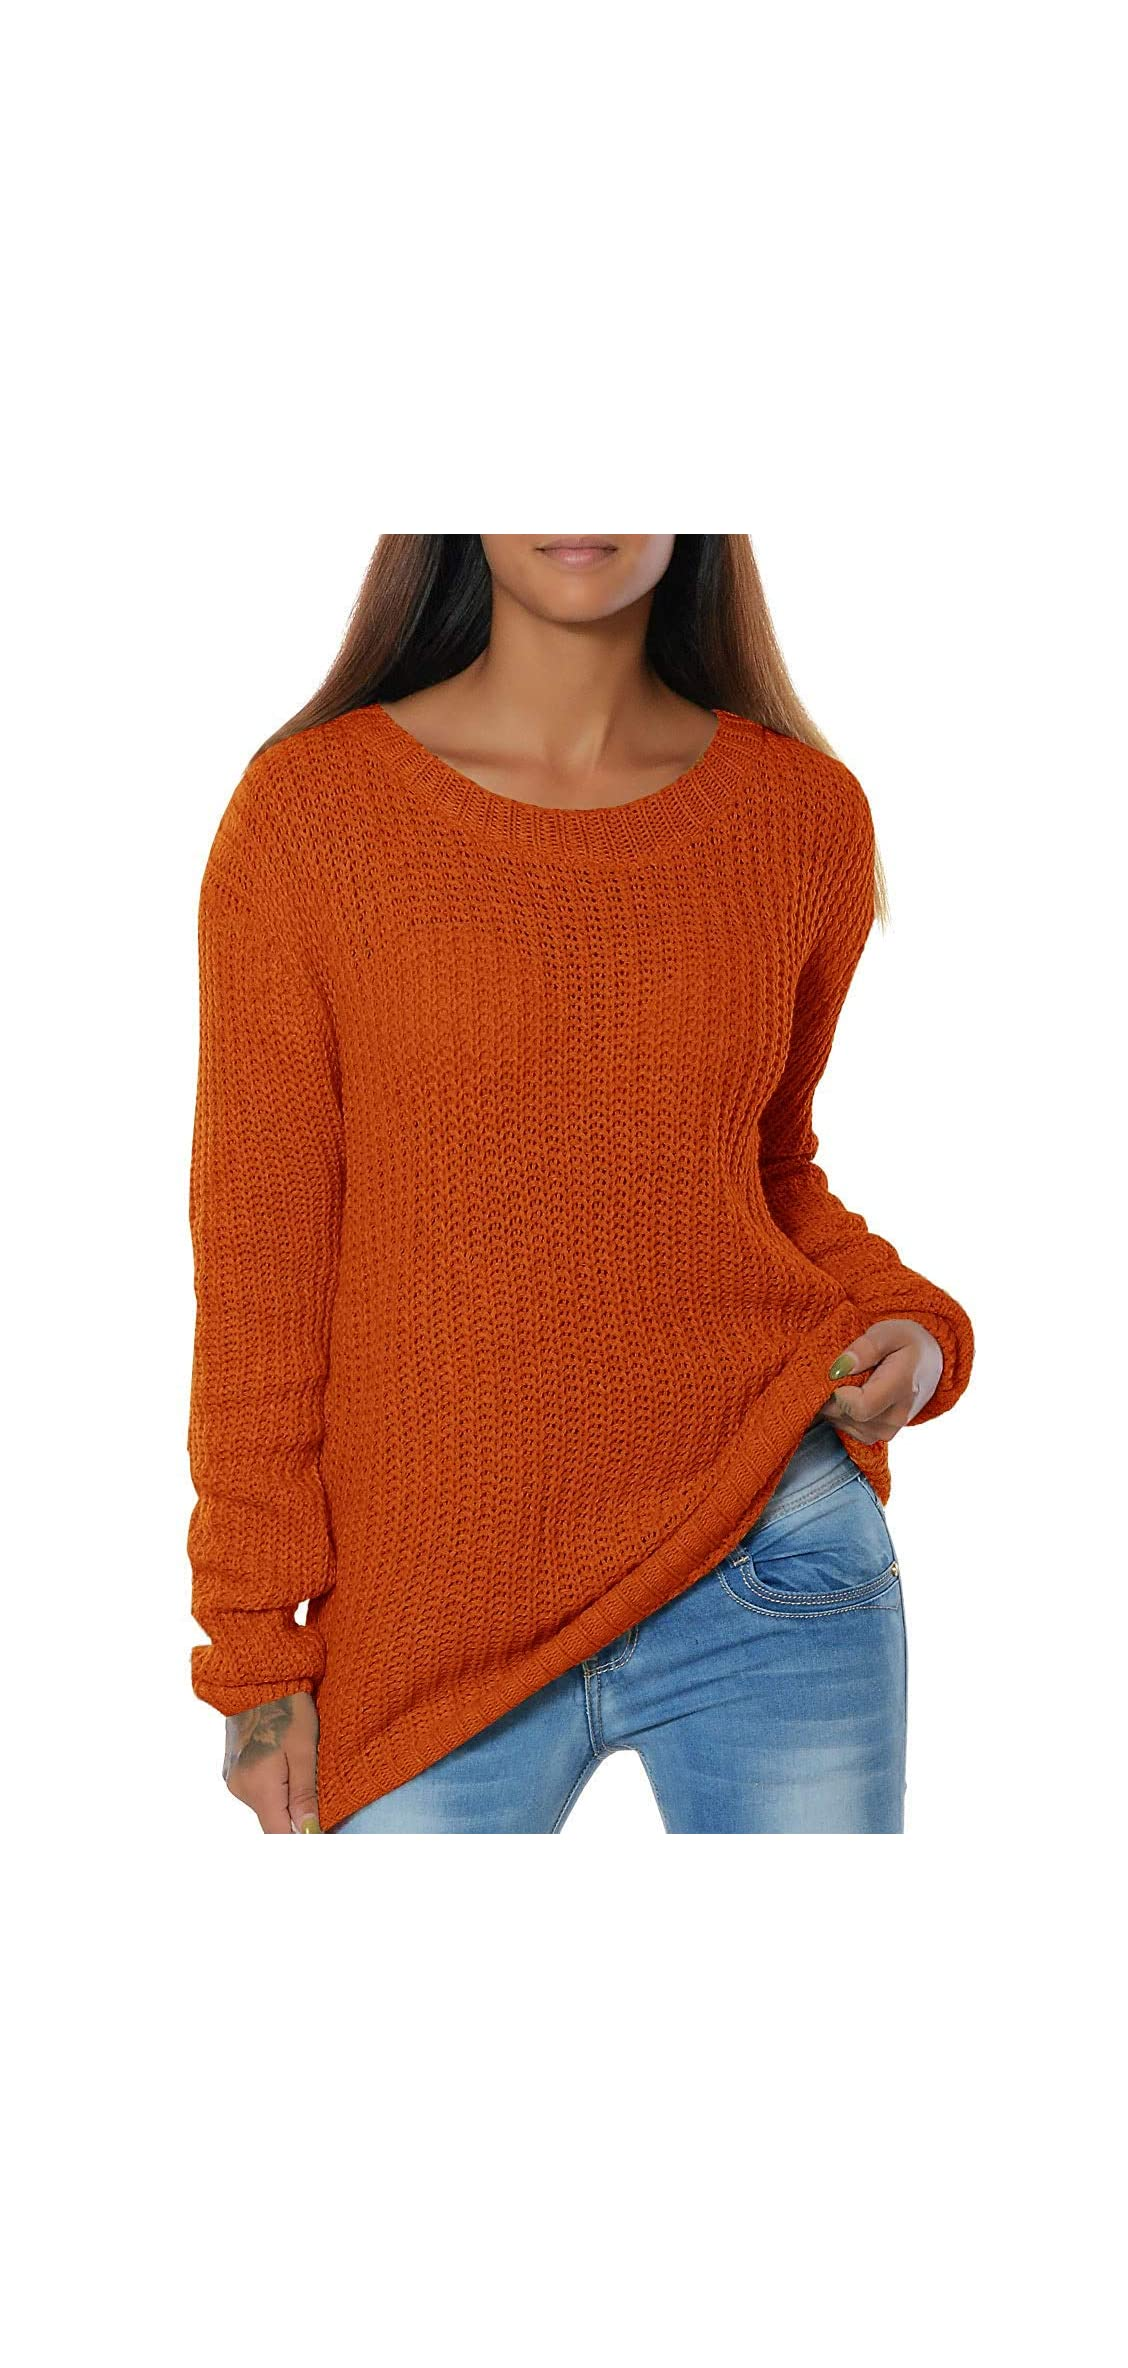 Womens Oversized Sweaters Fall Chunky Knit Loose Fit